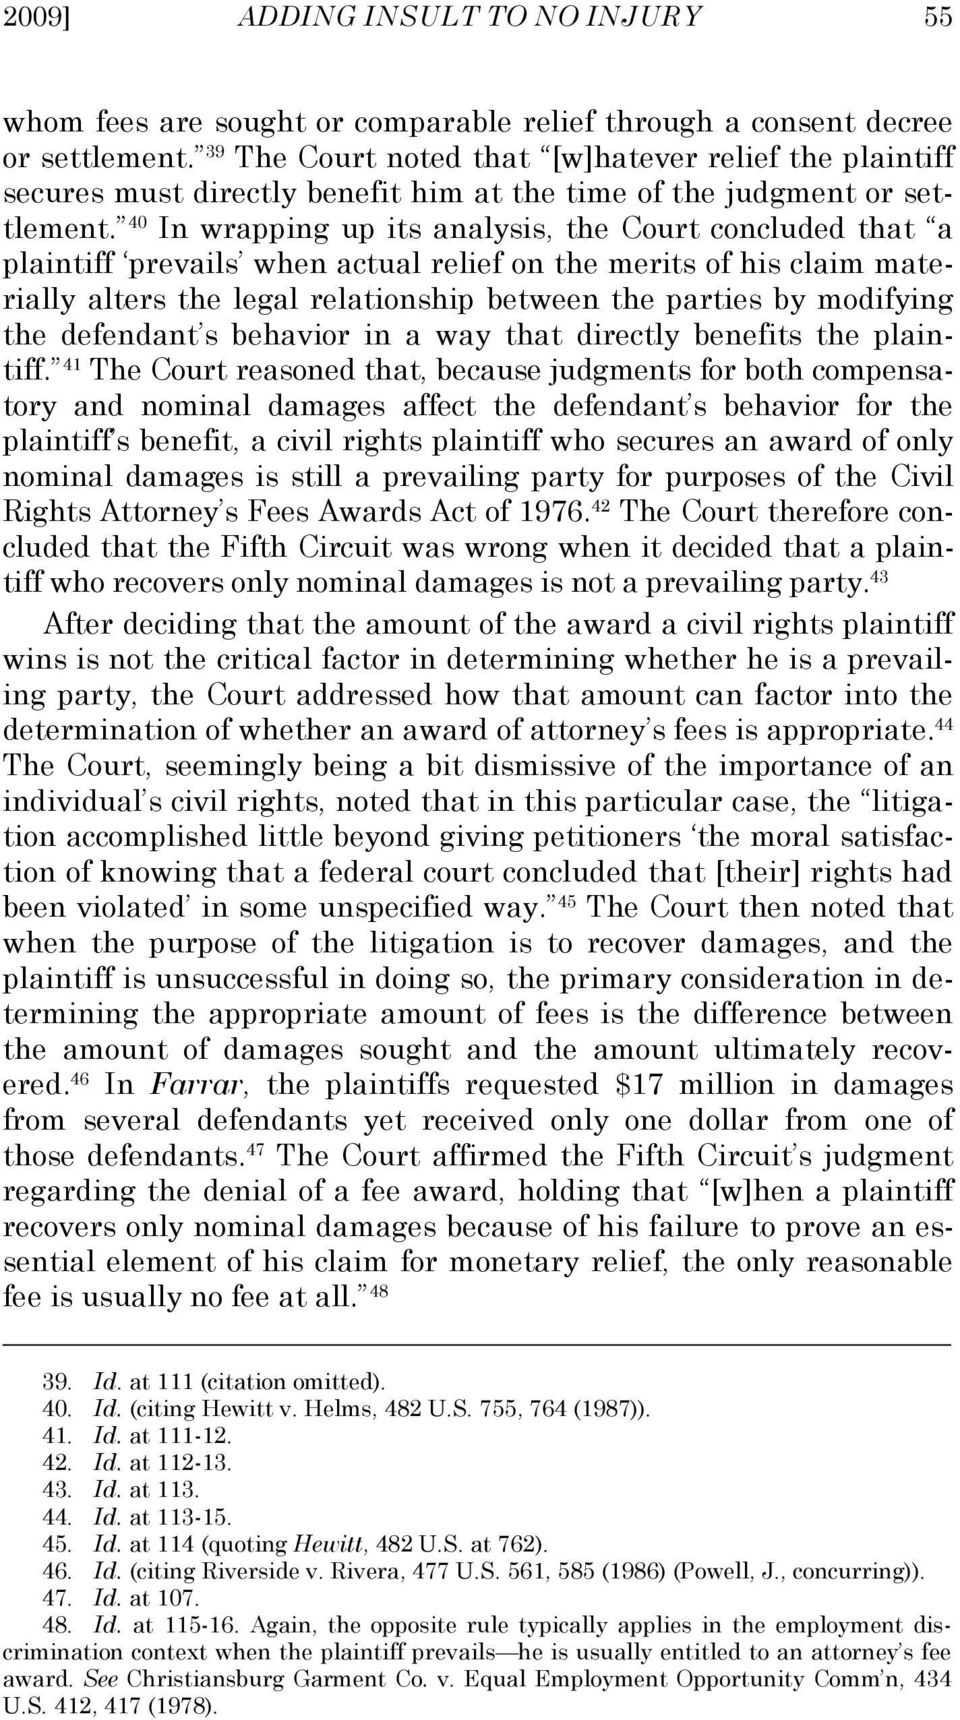 40 In wrapping up its analysis, the Court concluded that a plaintiff prevails when actual relief on the merits of his claim materially alters the legal relationship between the parties by modifying